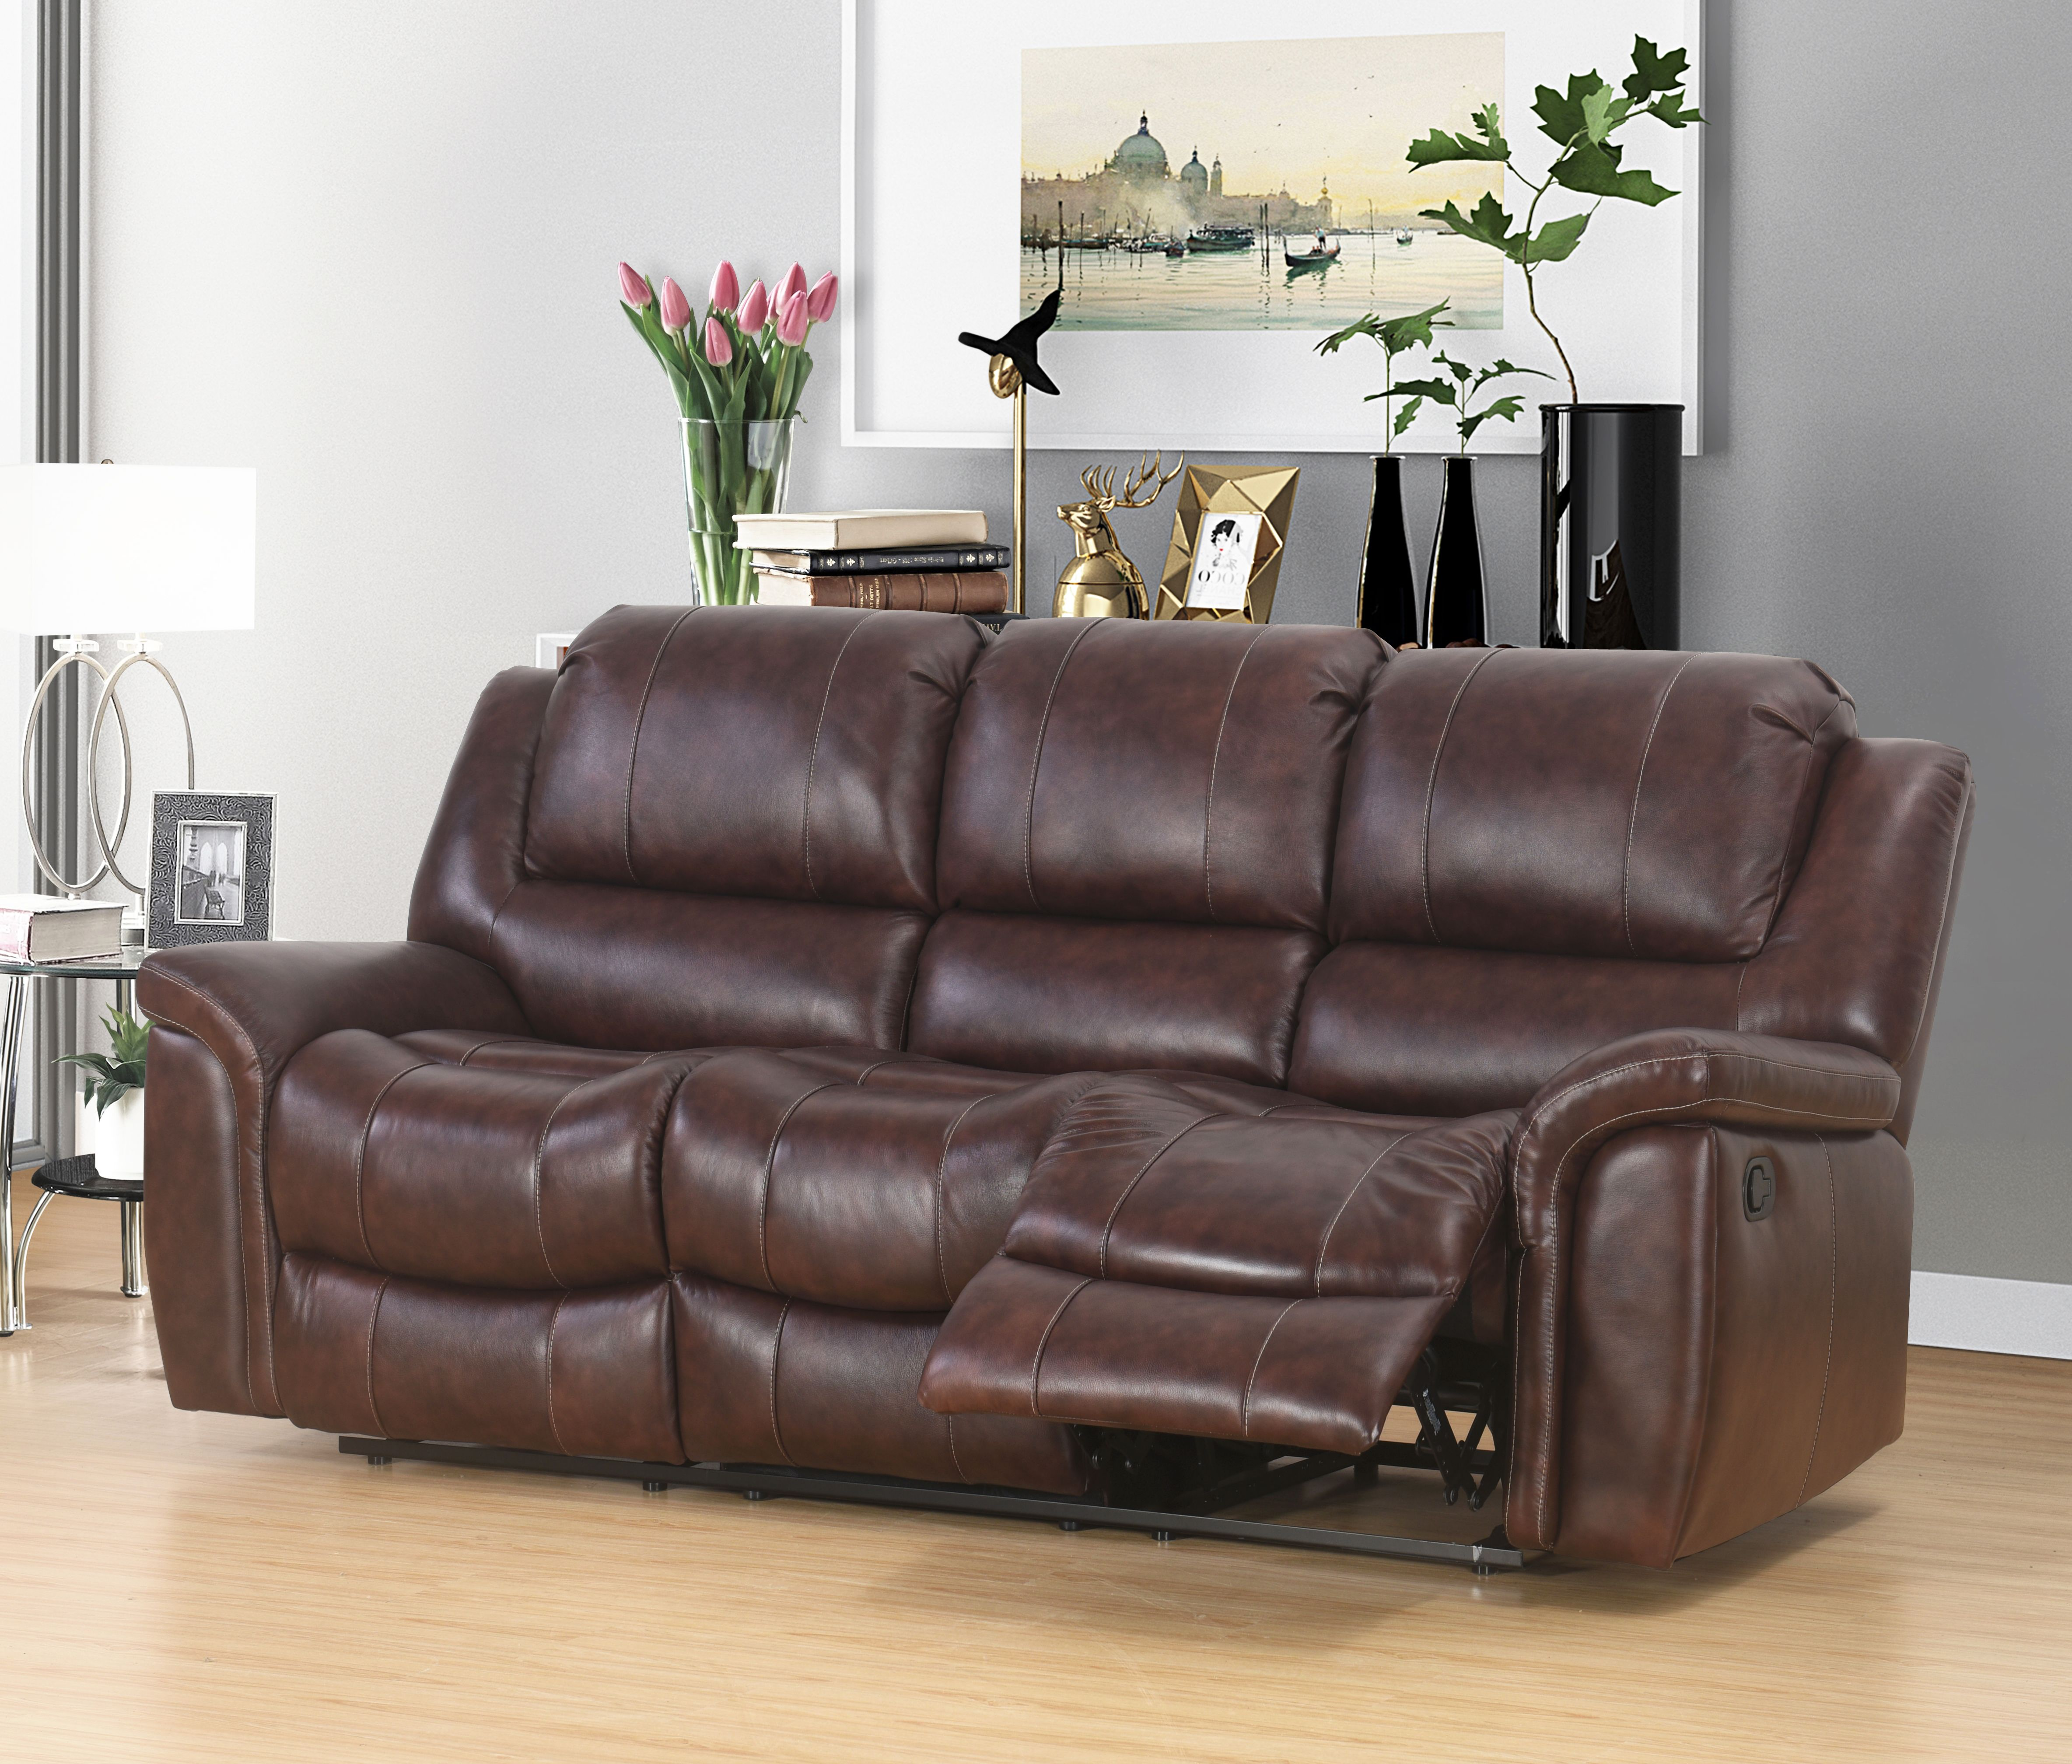 Home With Images Top Grain Leather Sofa Reclining Sofa Sofa